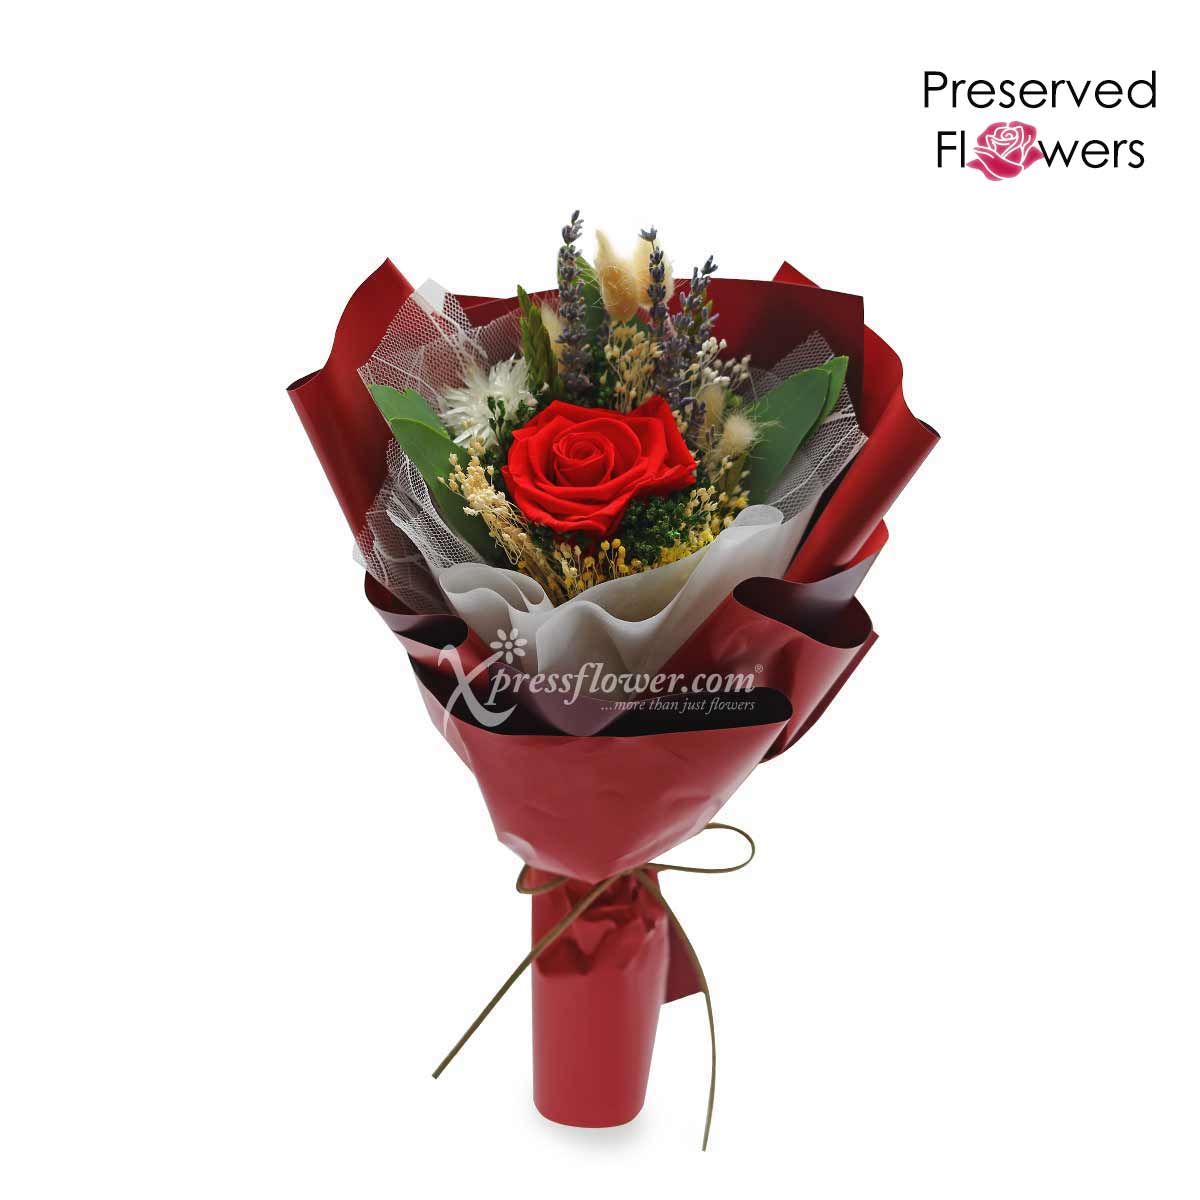 PR2001 Sinfully Yours Preserved flowers